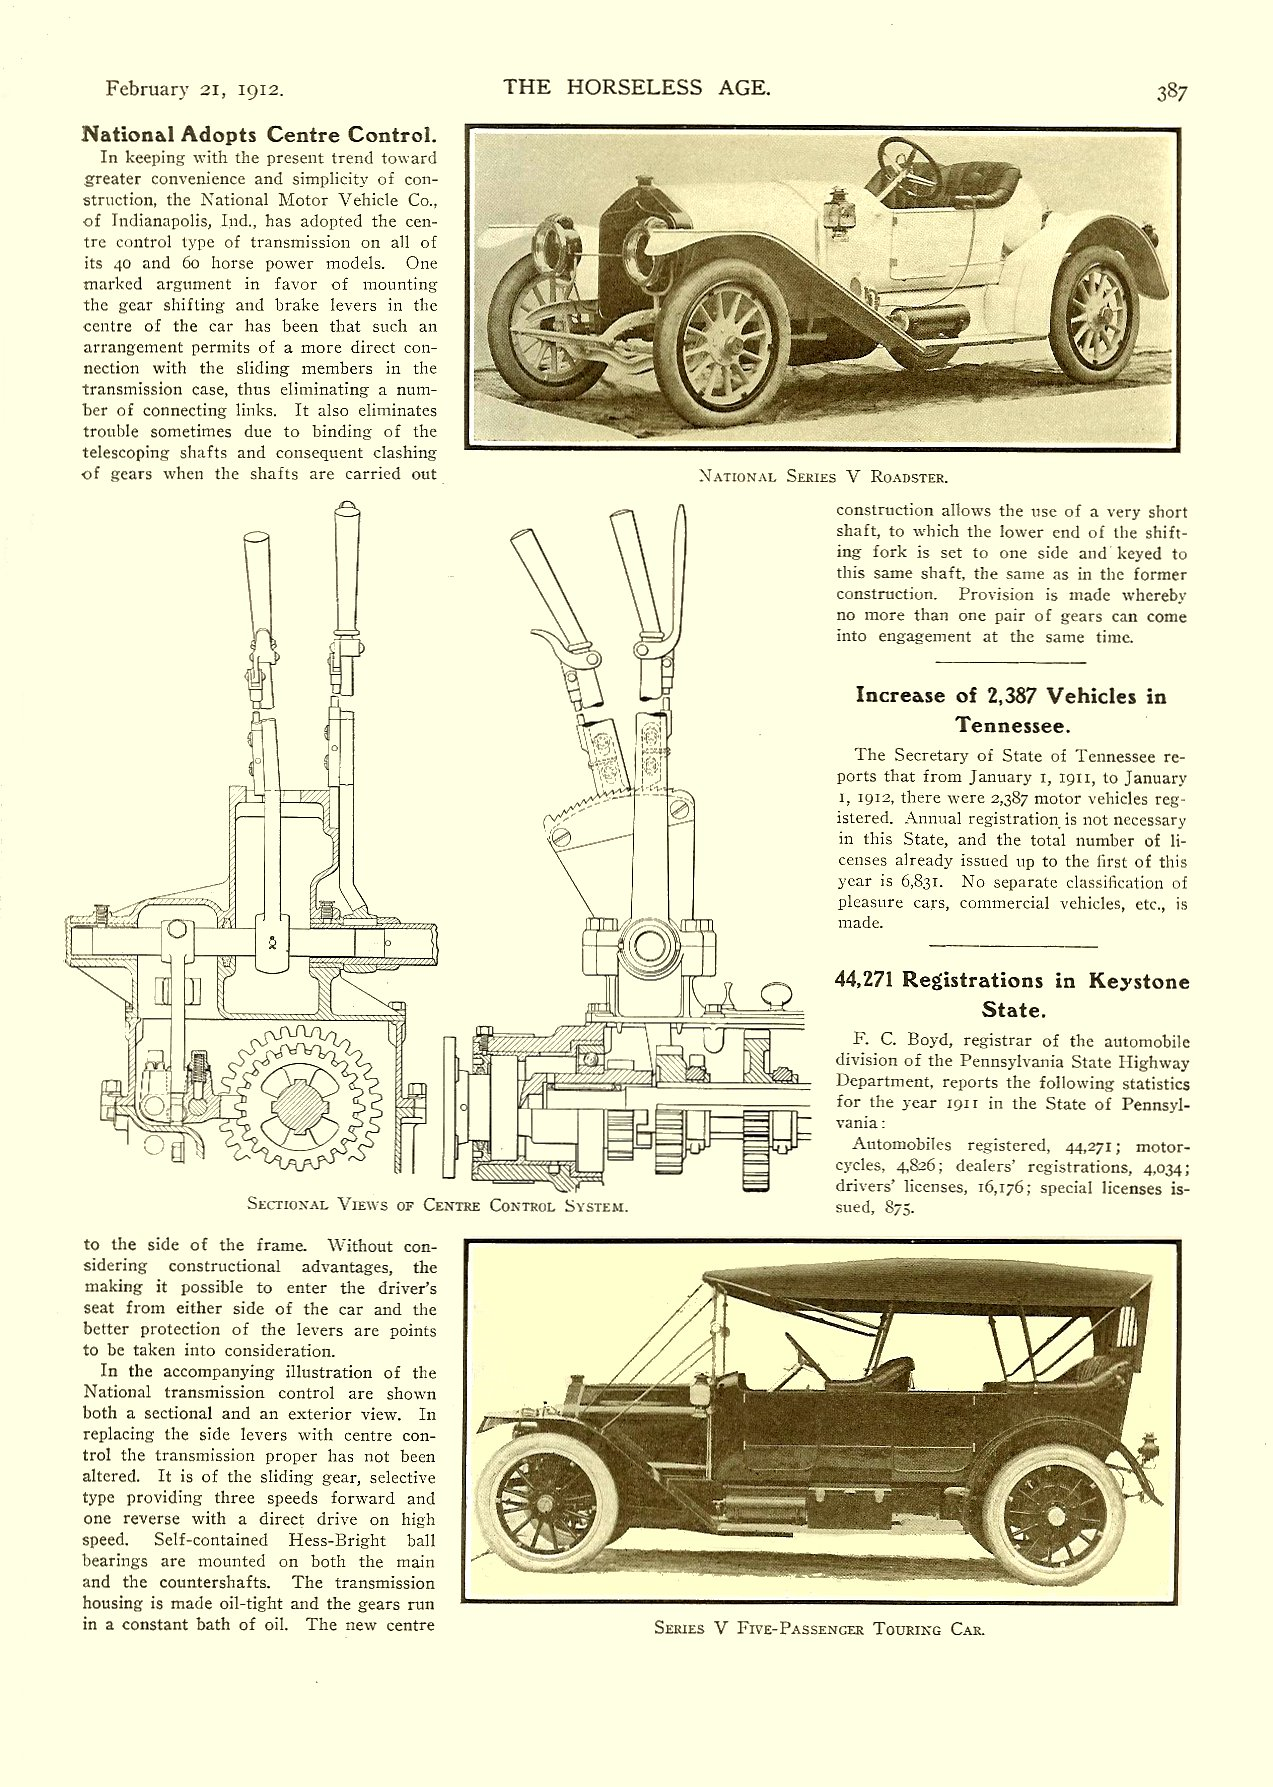 1912 2 21 NATIONAL National Adopts Centre Control THE HORSELESS AGE Vol. 29, No. 8 February 21, 1912 9″x12″ page 387